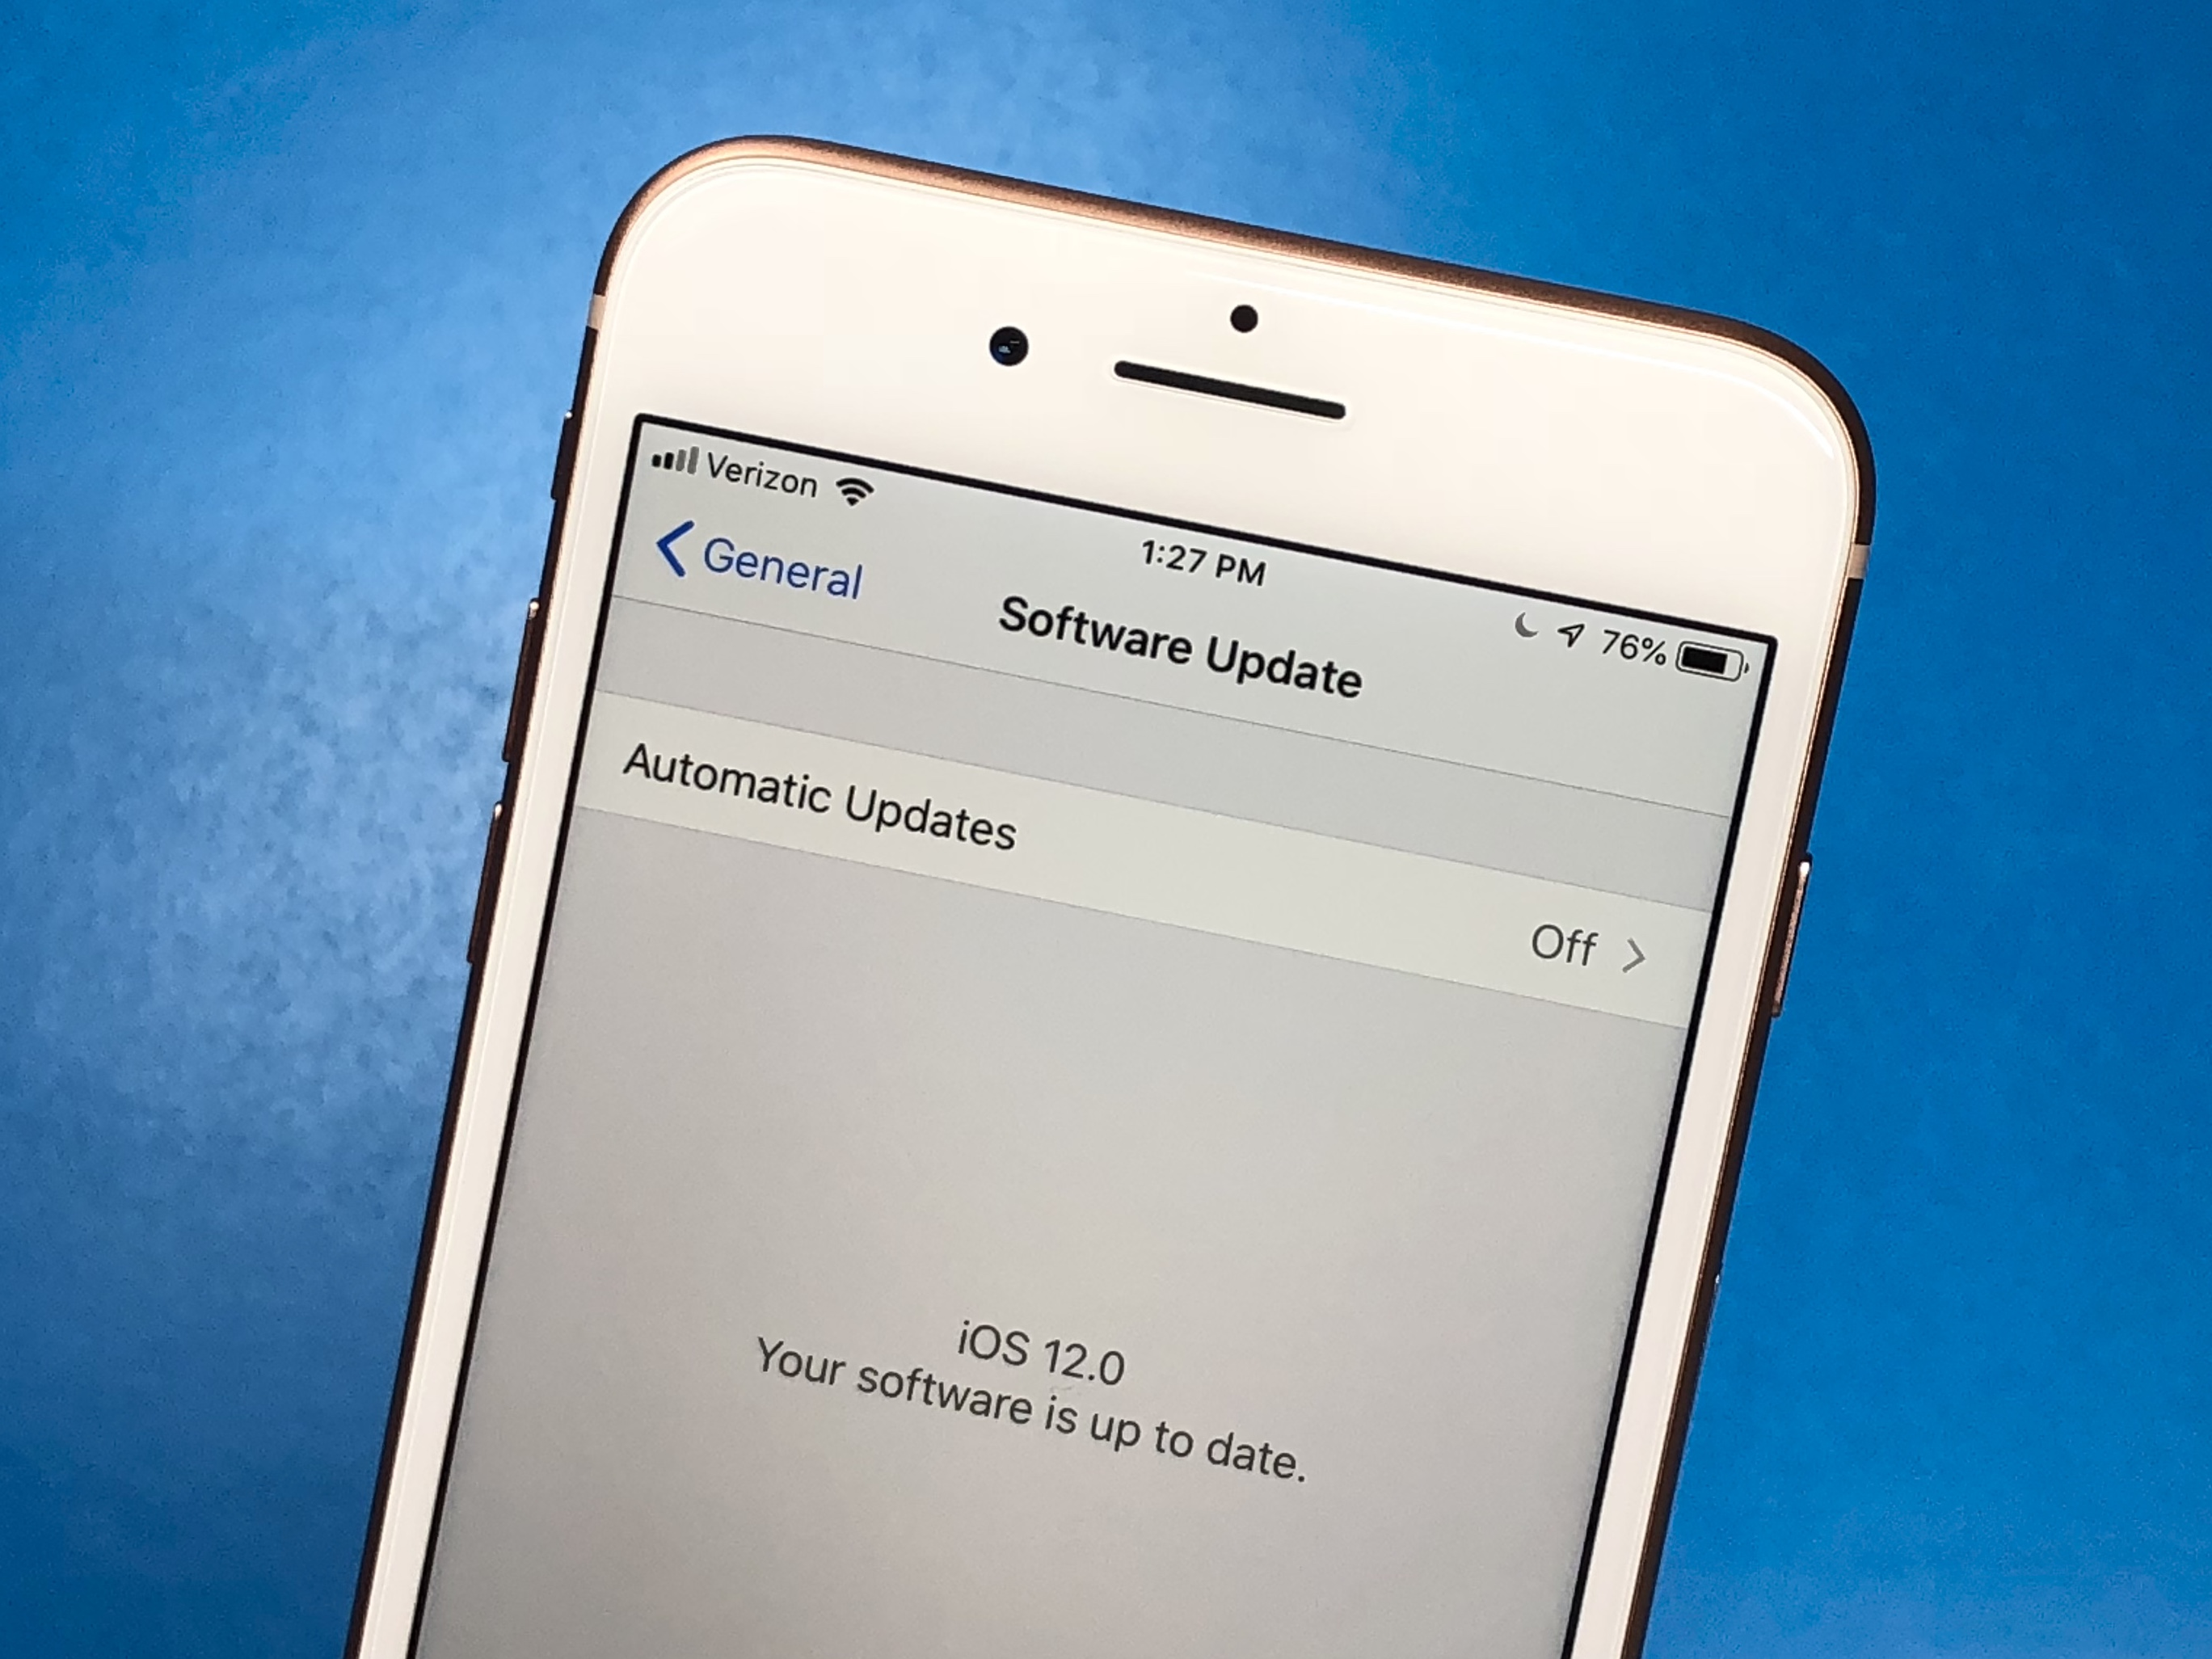 How to downgrade to ios 10 from ios 12